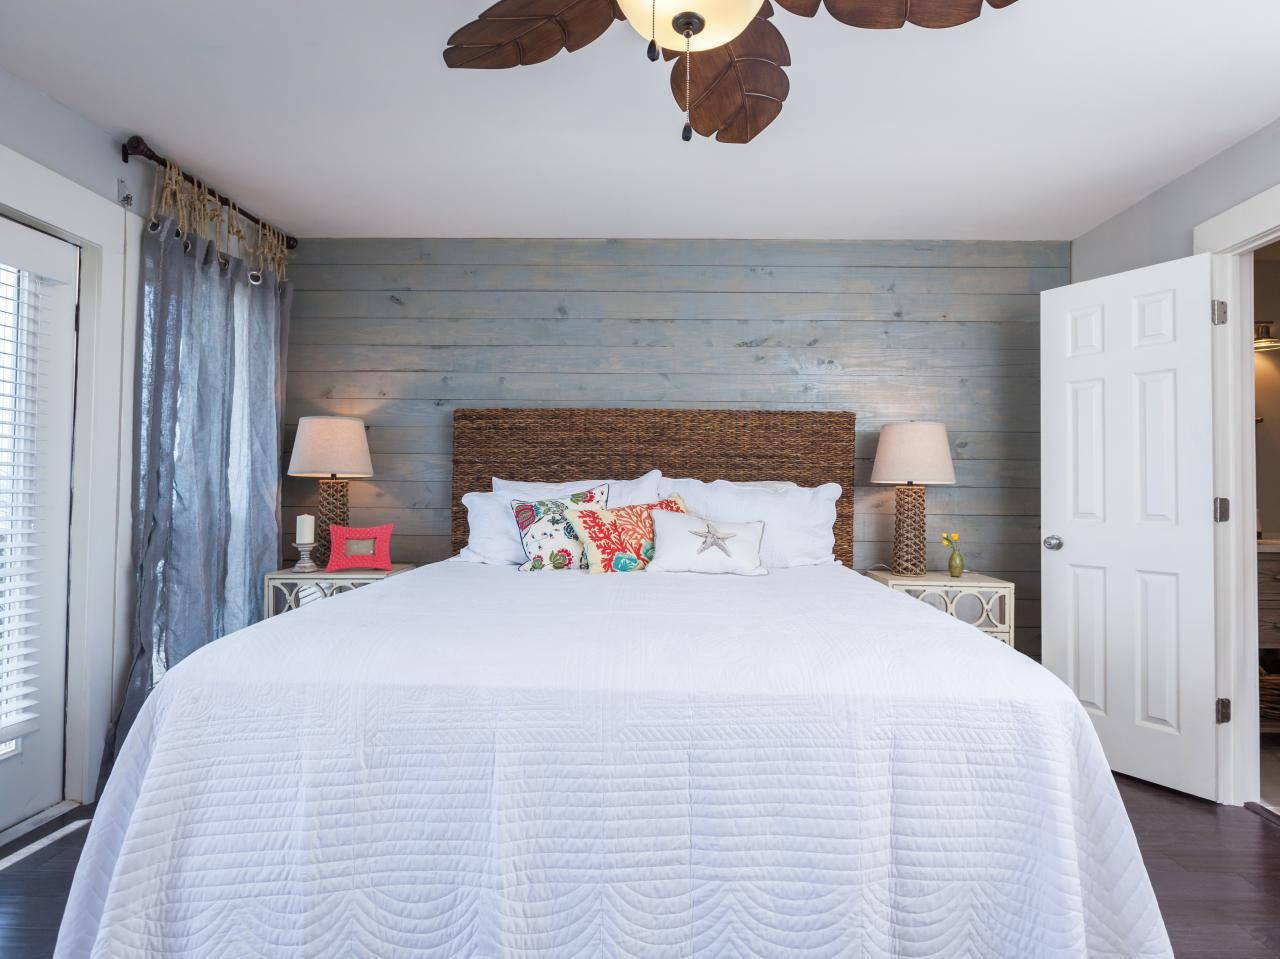 Rustic Chic Master Bedroom Renovation From Hgtv S Beach